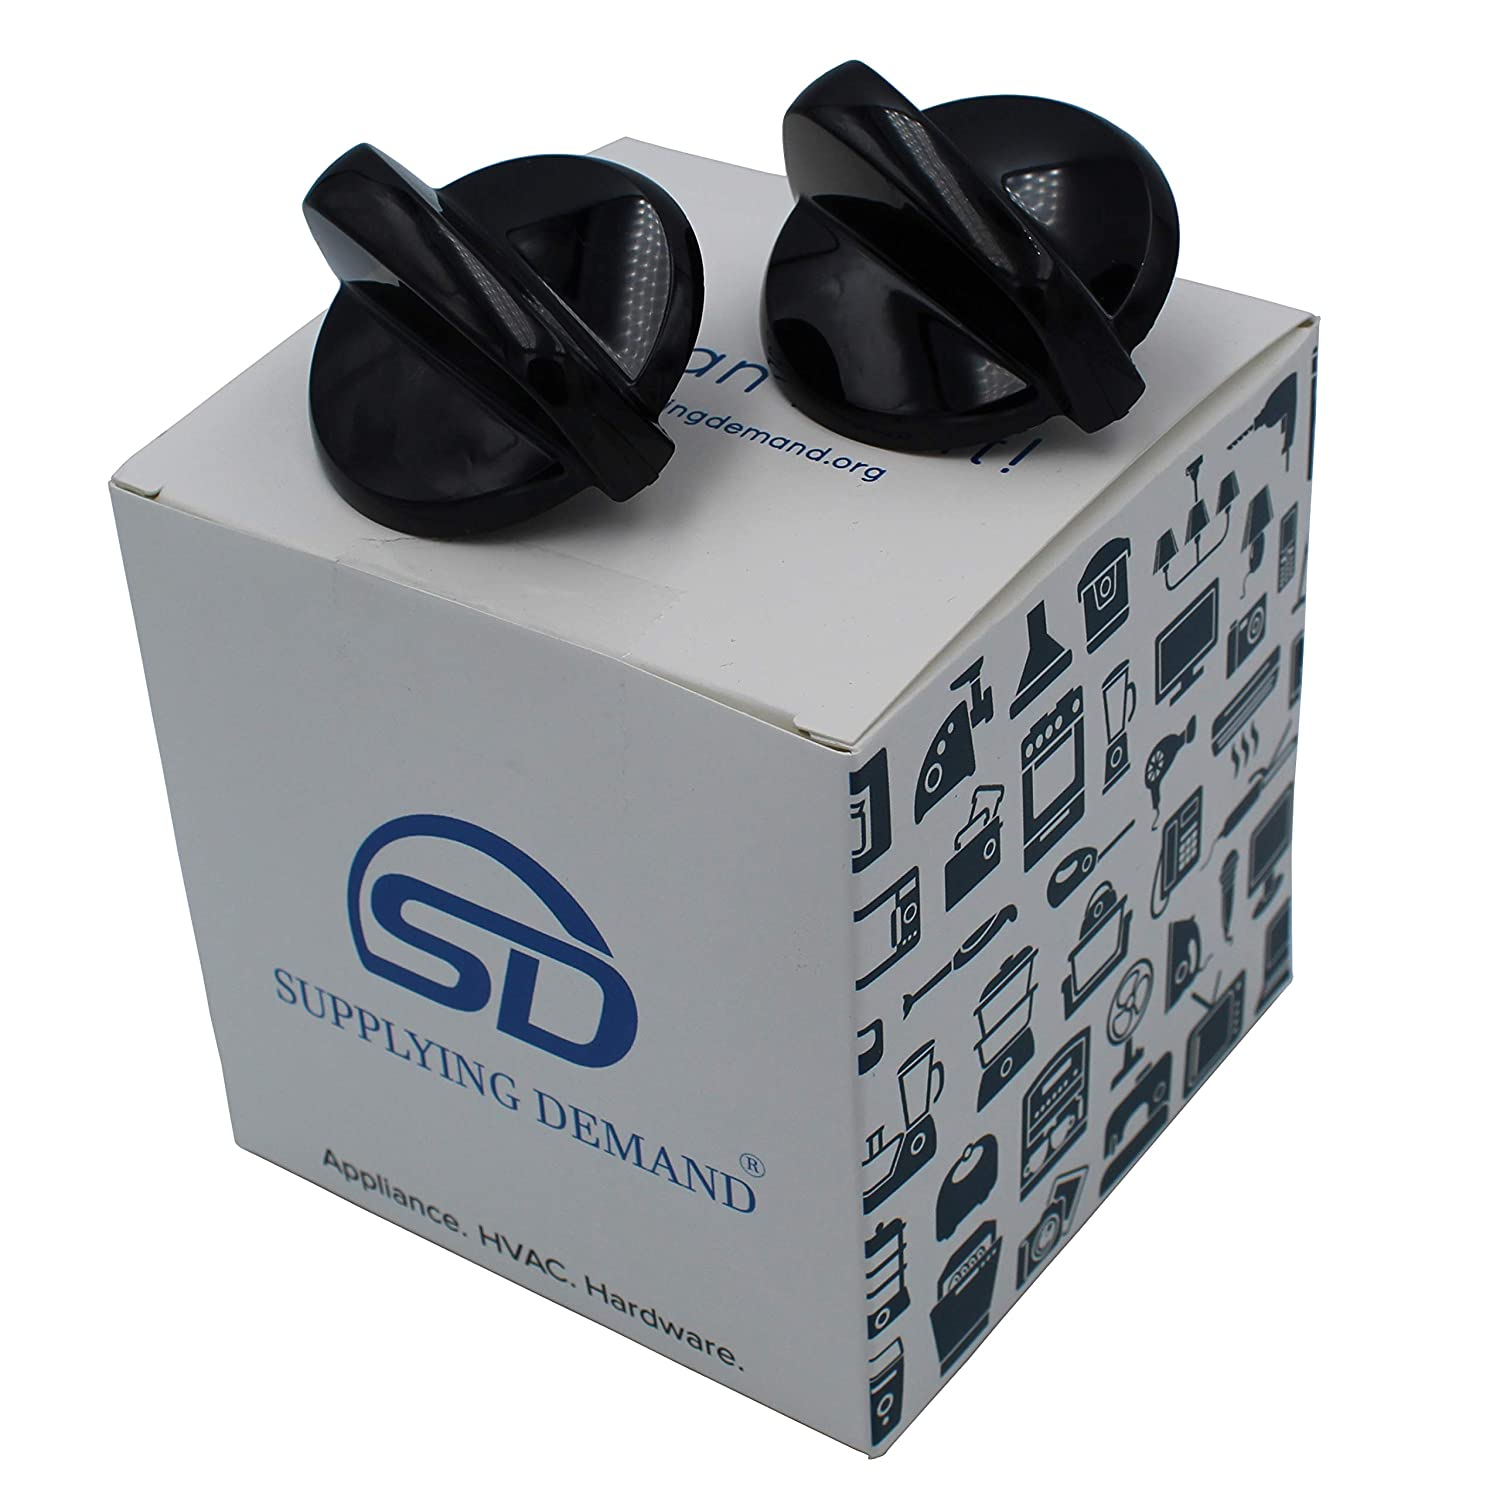 Supplying Demand WB03K10216 Black Knob Minivalve 2 Pack Compatible With GE Compatible With Hotpoint